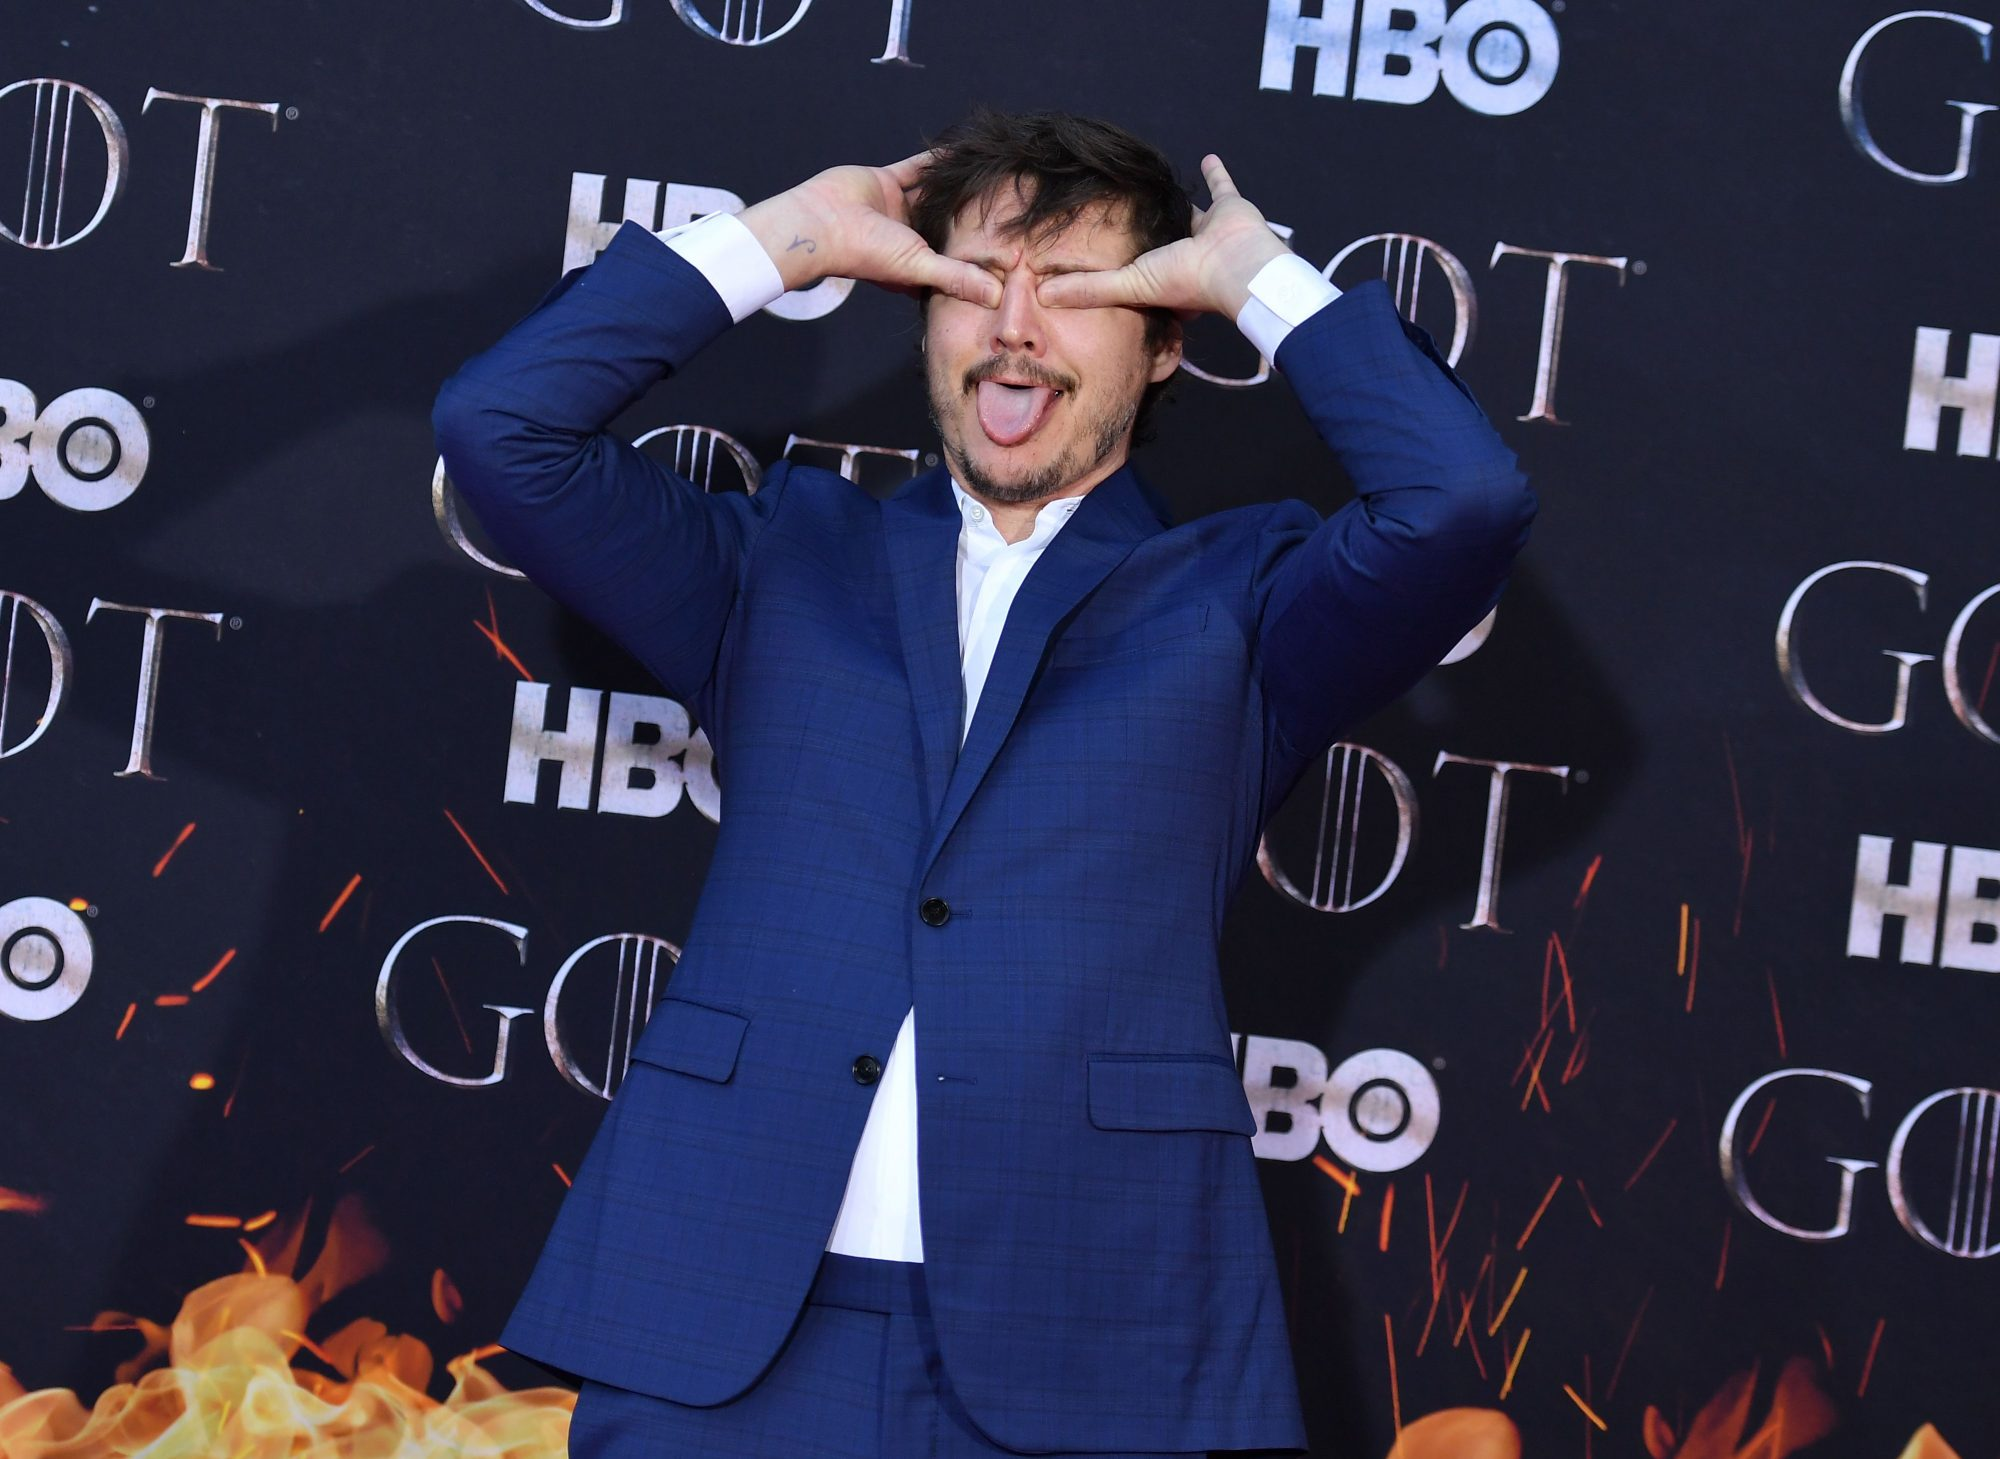 """Chilean actor Pedro Pascal arrives for the """"Game of Thrones"""" eighth and final season premiere at Radio City Music Hall on April 3, 2019 in New York city. (Photo by Angela Weiss / AFP)        (Photo credit should read ANGELA WEISS/AFP/Getty Images)"""